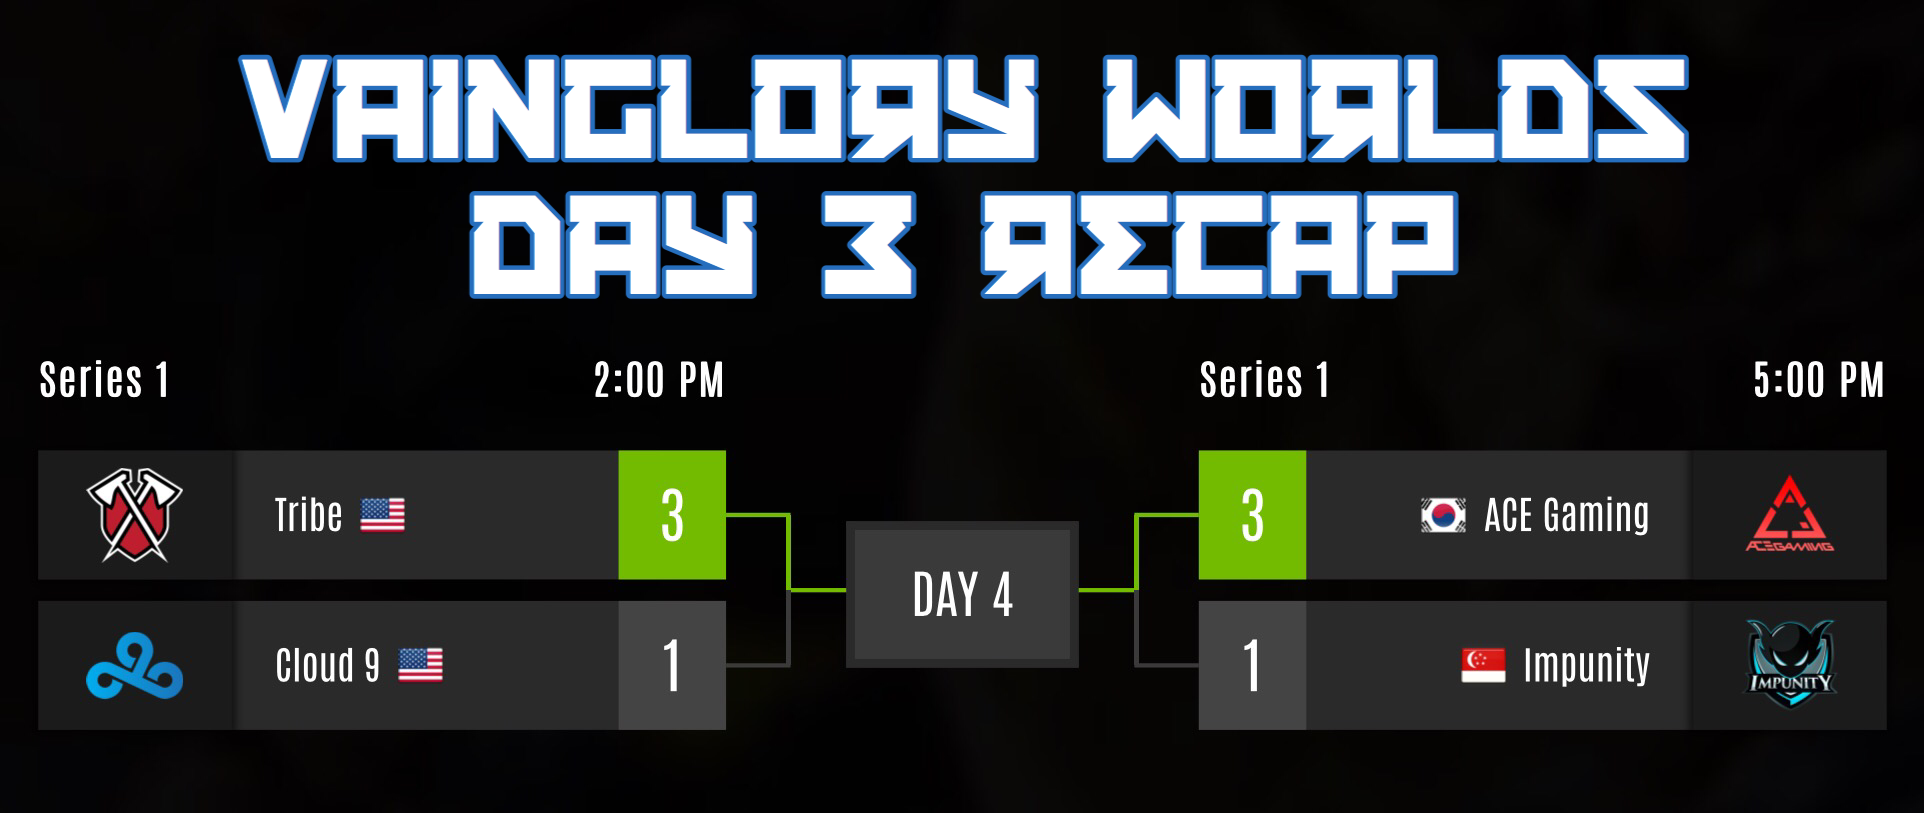 vainglory worlds 2017 day 3